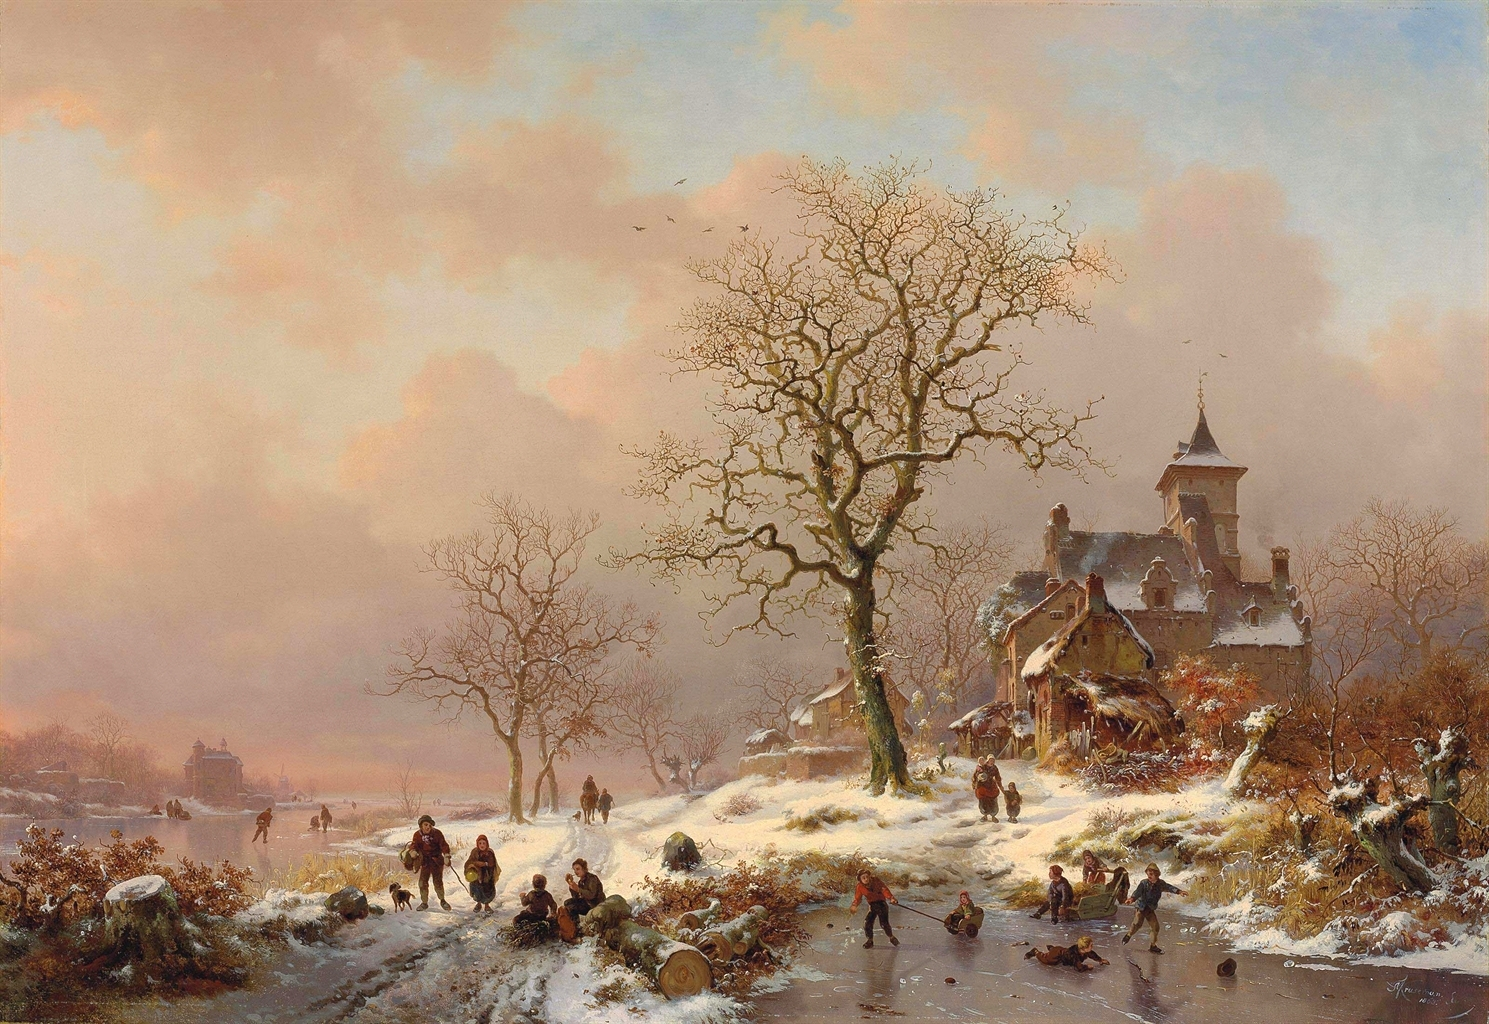 Frederik Marinus Kruseman – private collection. Title: Winter landscape with figures playing on the ice. Date: 1868. Materials: oil on canvas. Dimensions: 70 x 100.7 cm. Inscriptions: F.M.Kruseman/1868 fec. (lower right). Sold by Christie's in London, on June 12, 2012. Source: http://www.christies.com/lotfinderimages/d55762/d5576204a.jpg. I have changed the light and contrast of the original photo.